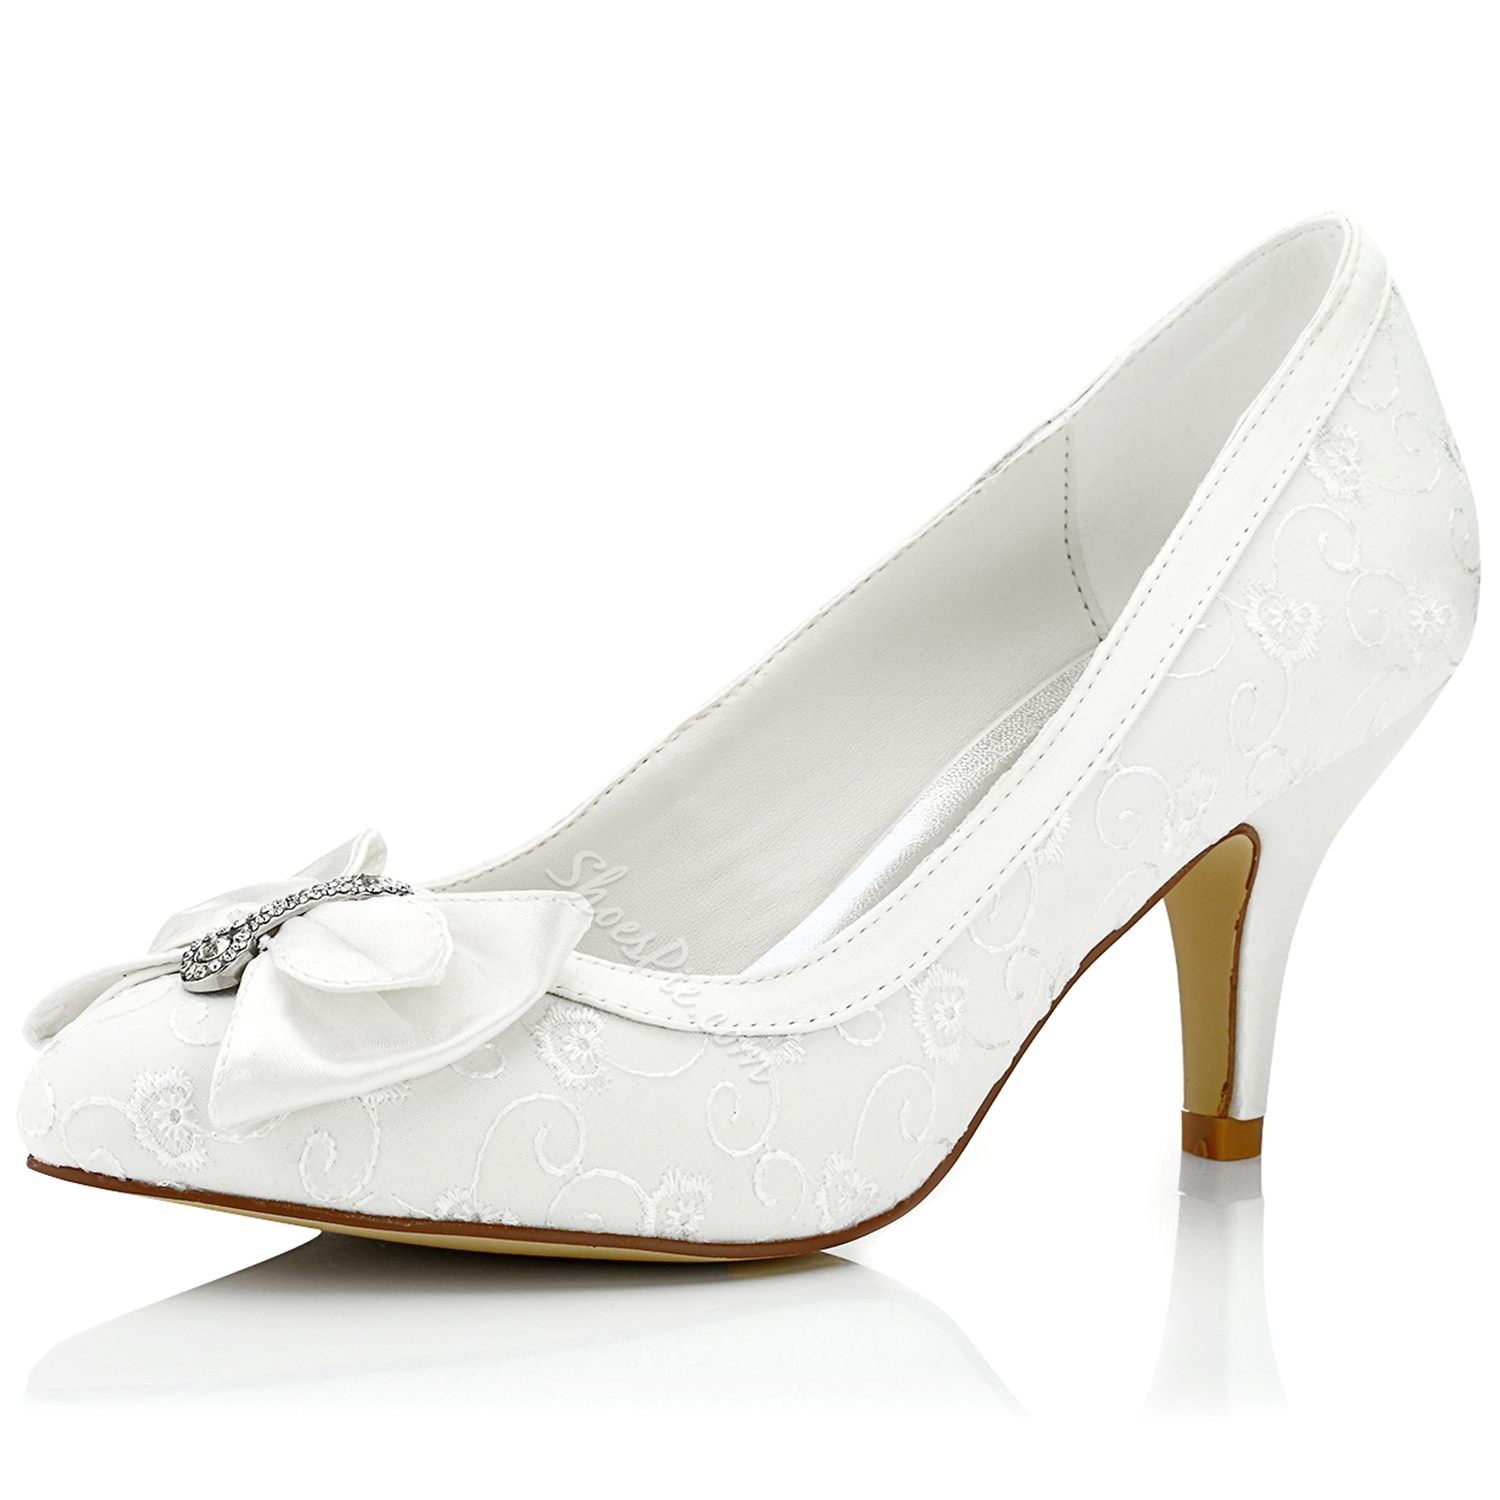 Shoespie Dreaming White Bow Low Heel Bridal Shoes- Shoespie.com